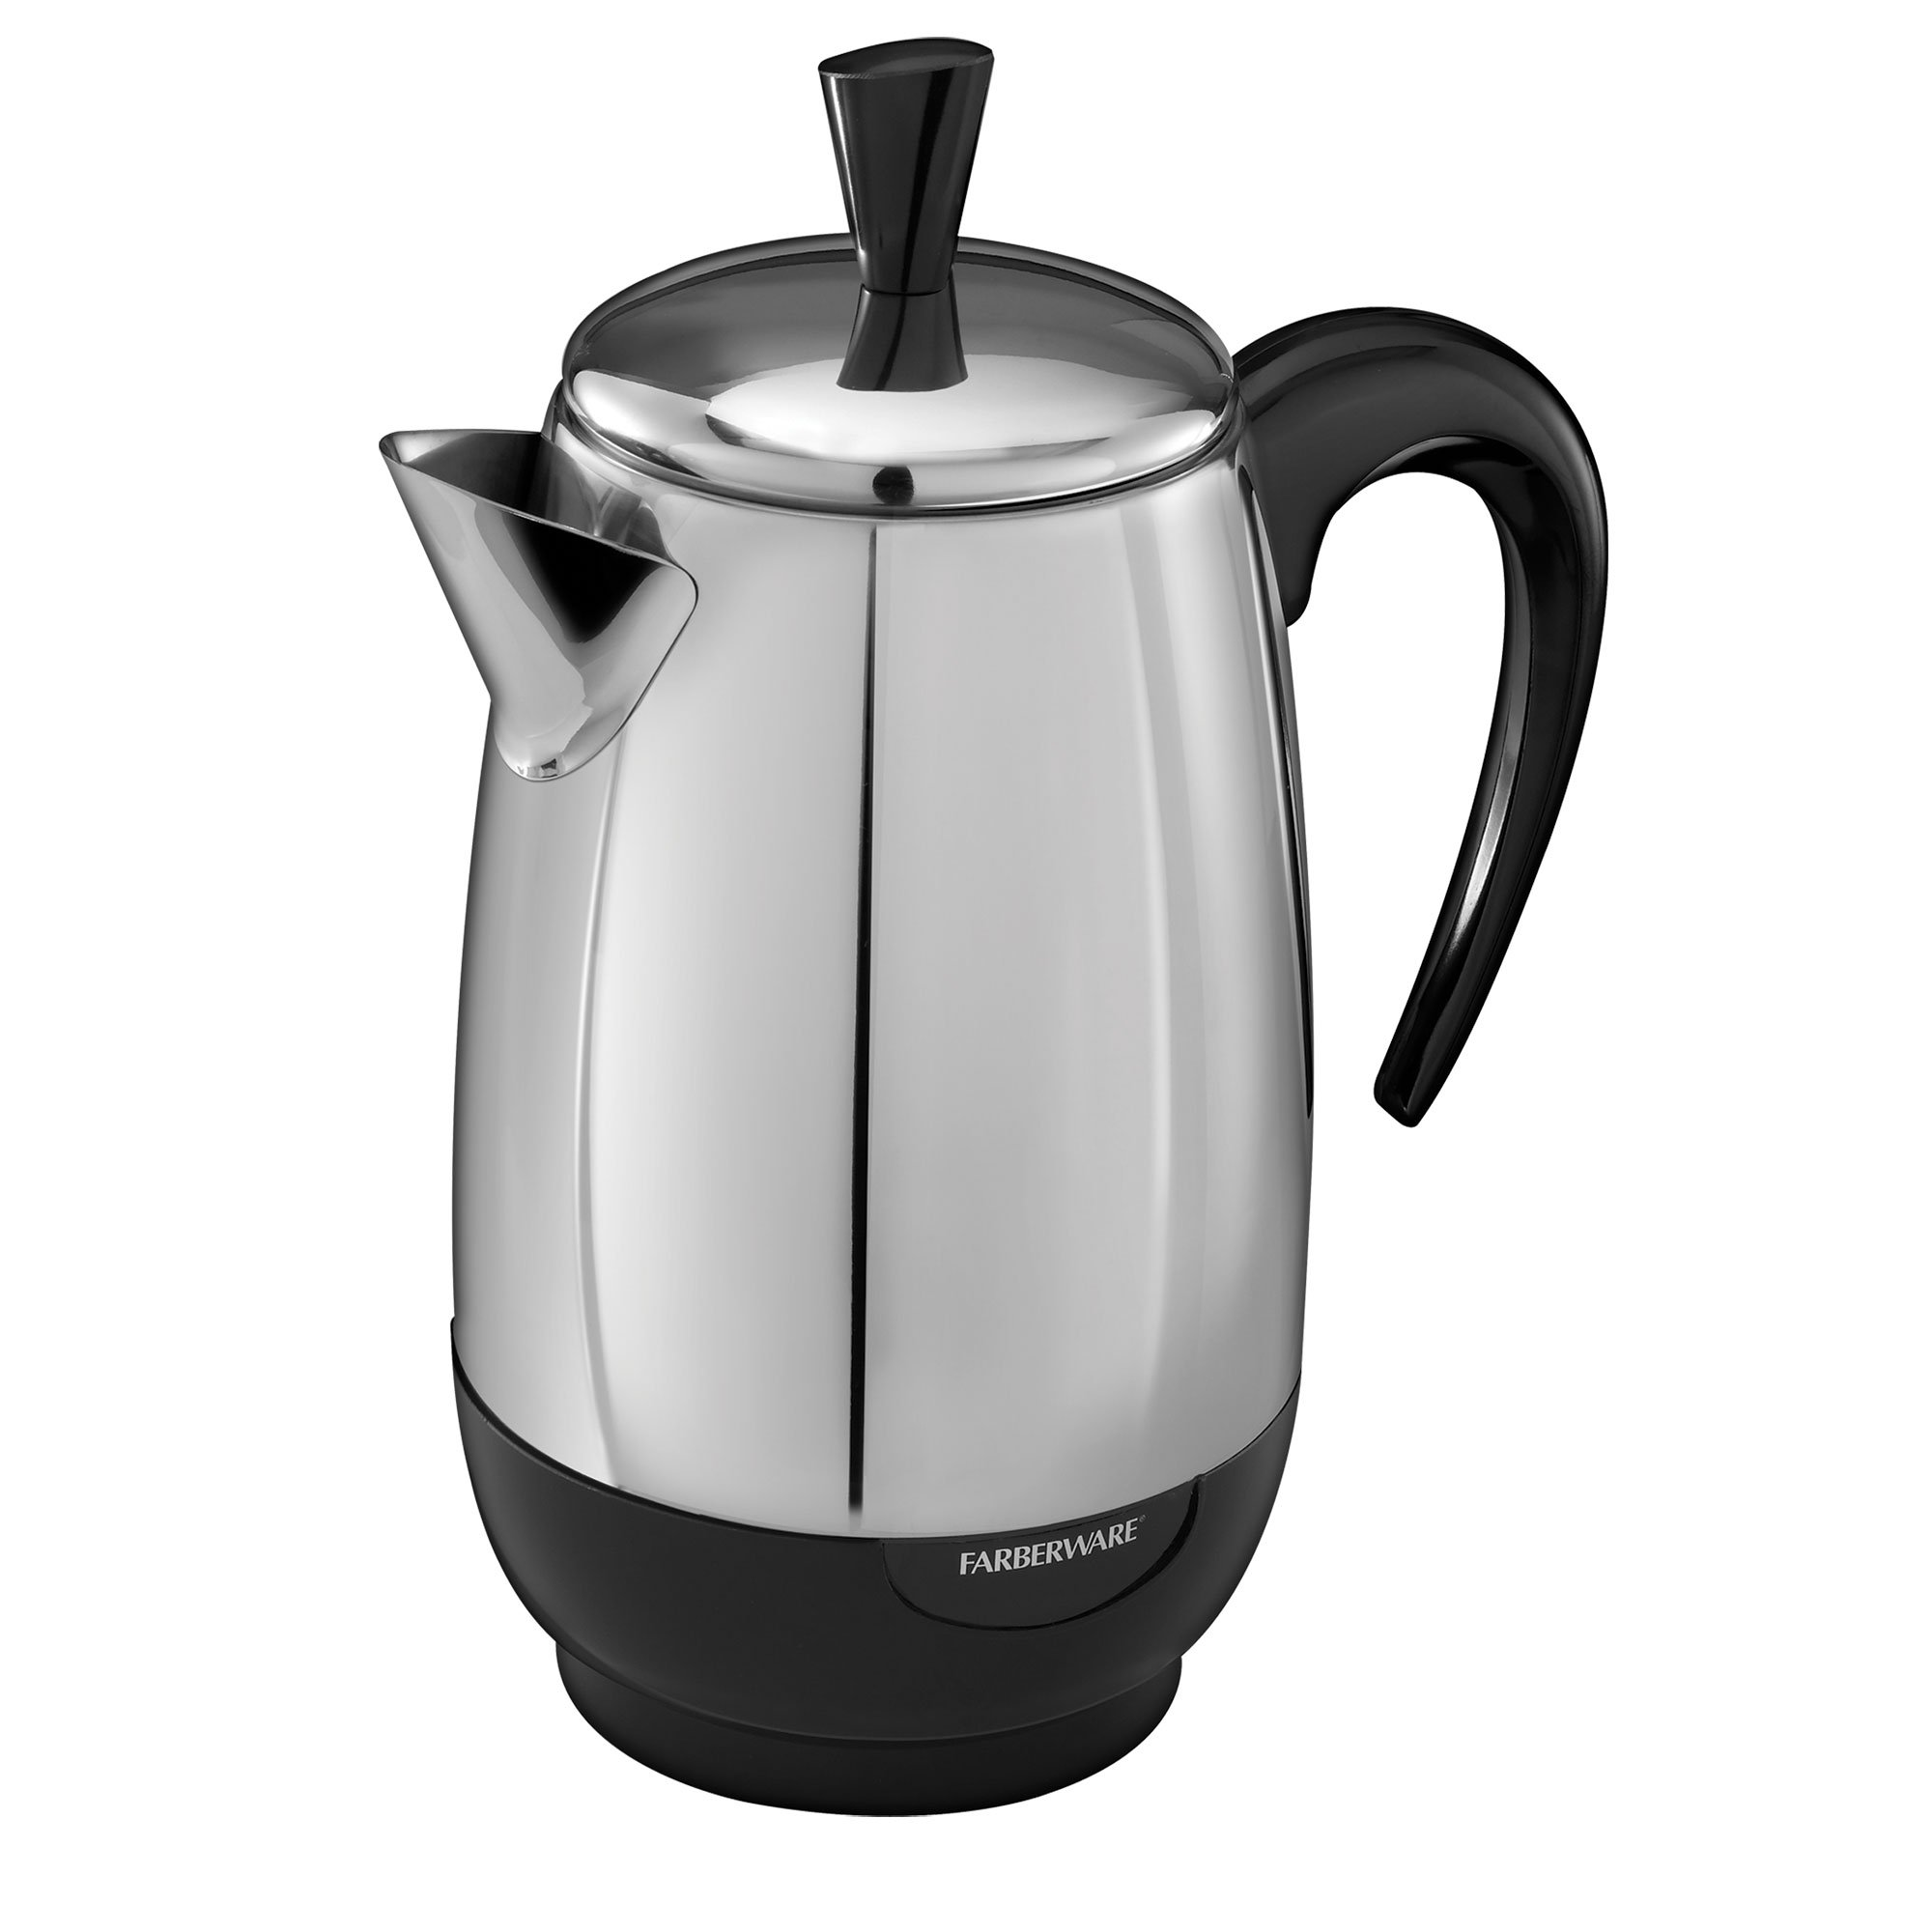 Farberware PK8000SS 8-Cup Coffee Percolator by Farberware